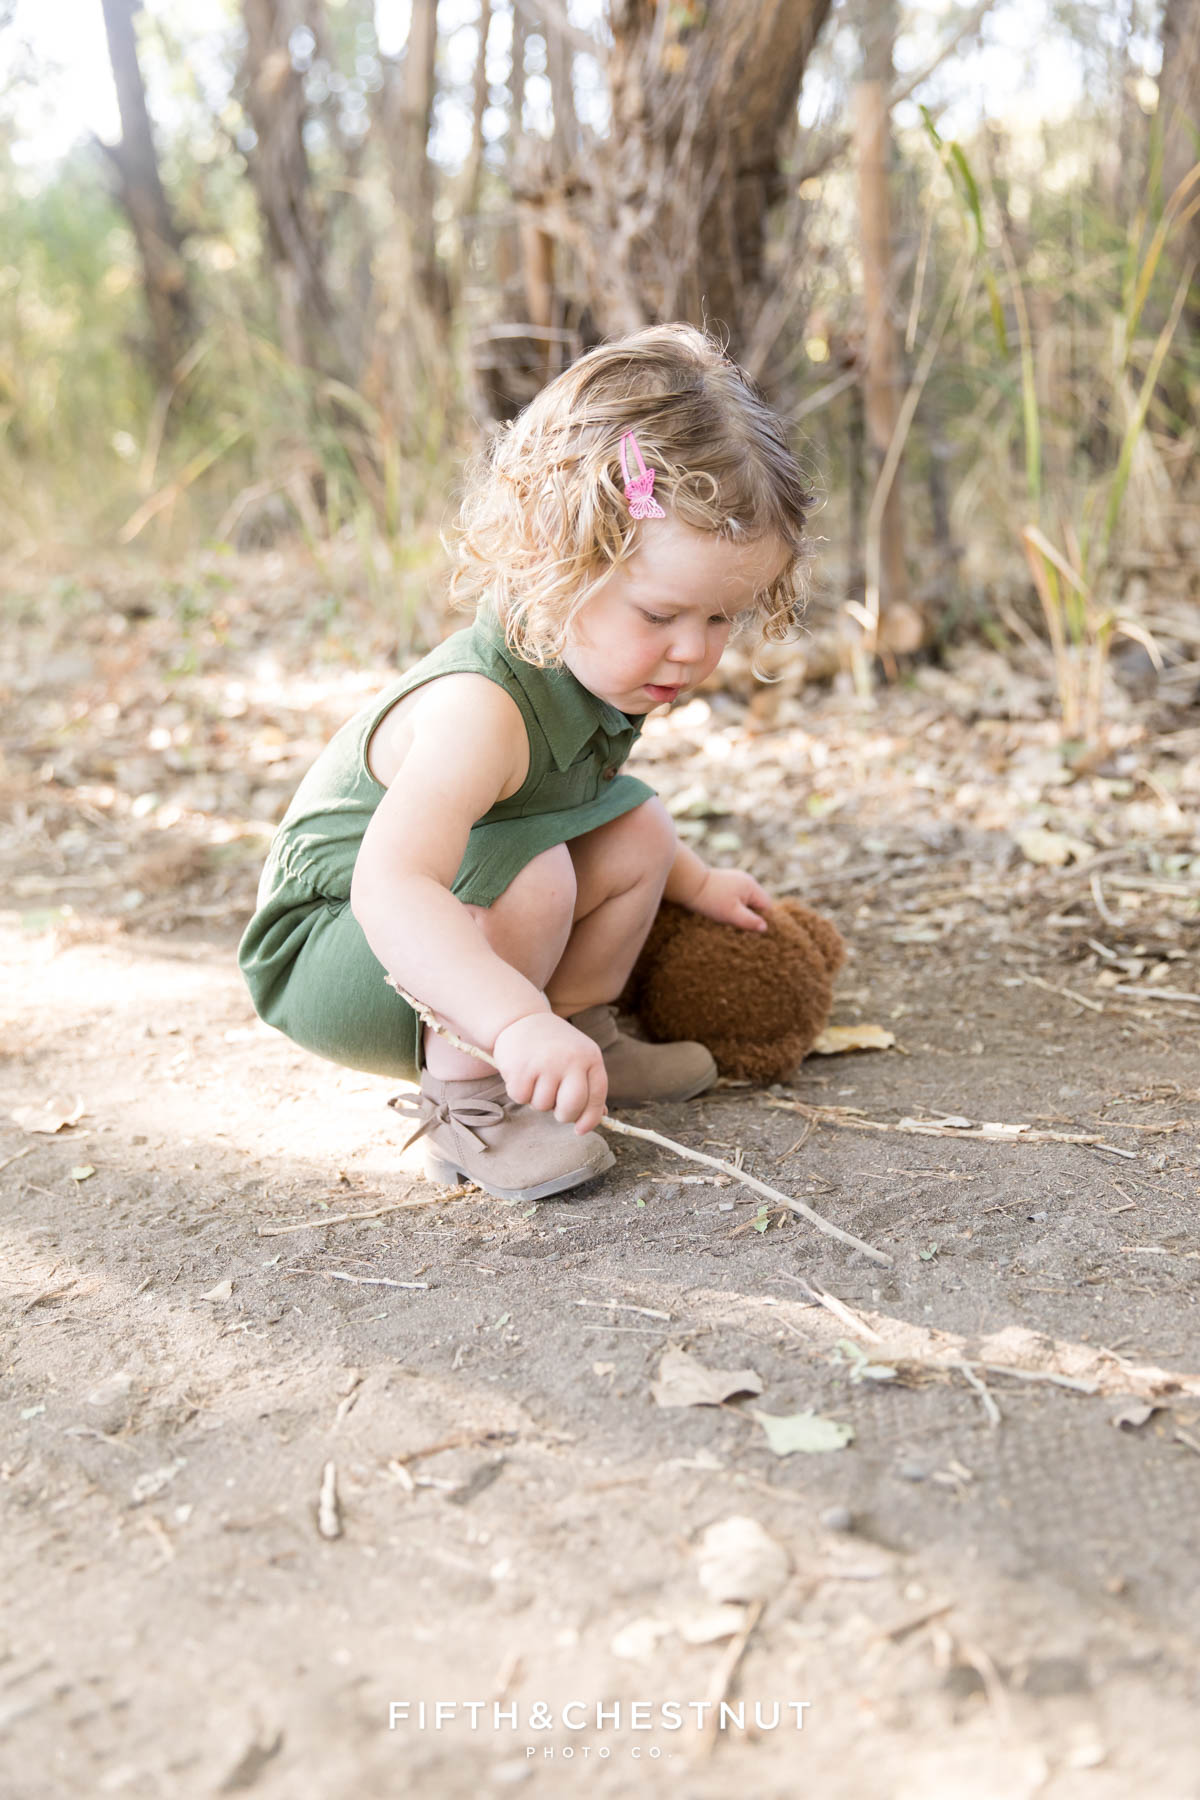 Toddler girl plays in the dirt while wearing a dress